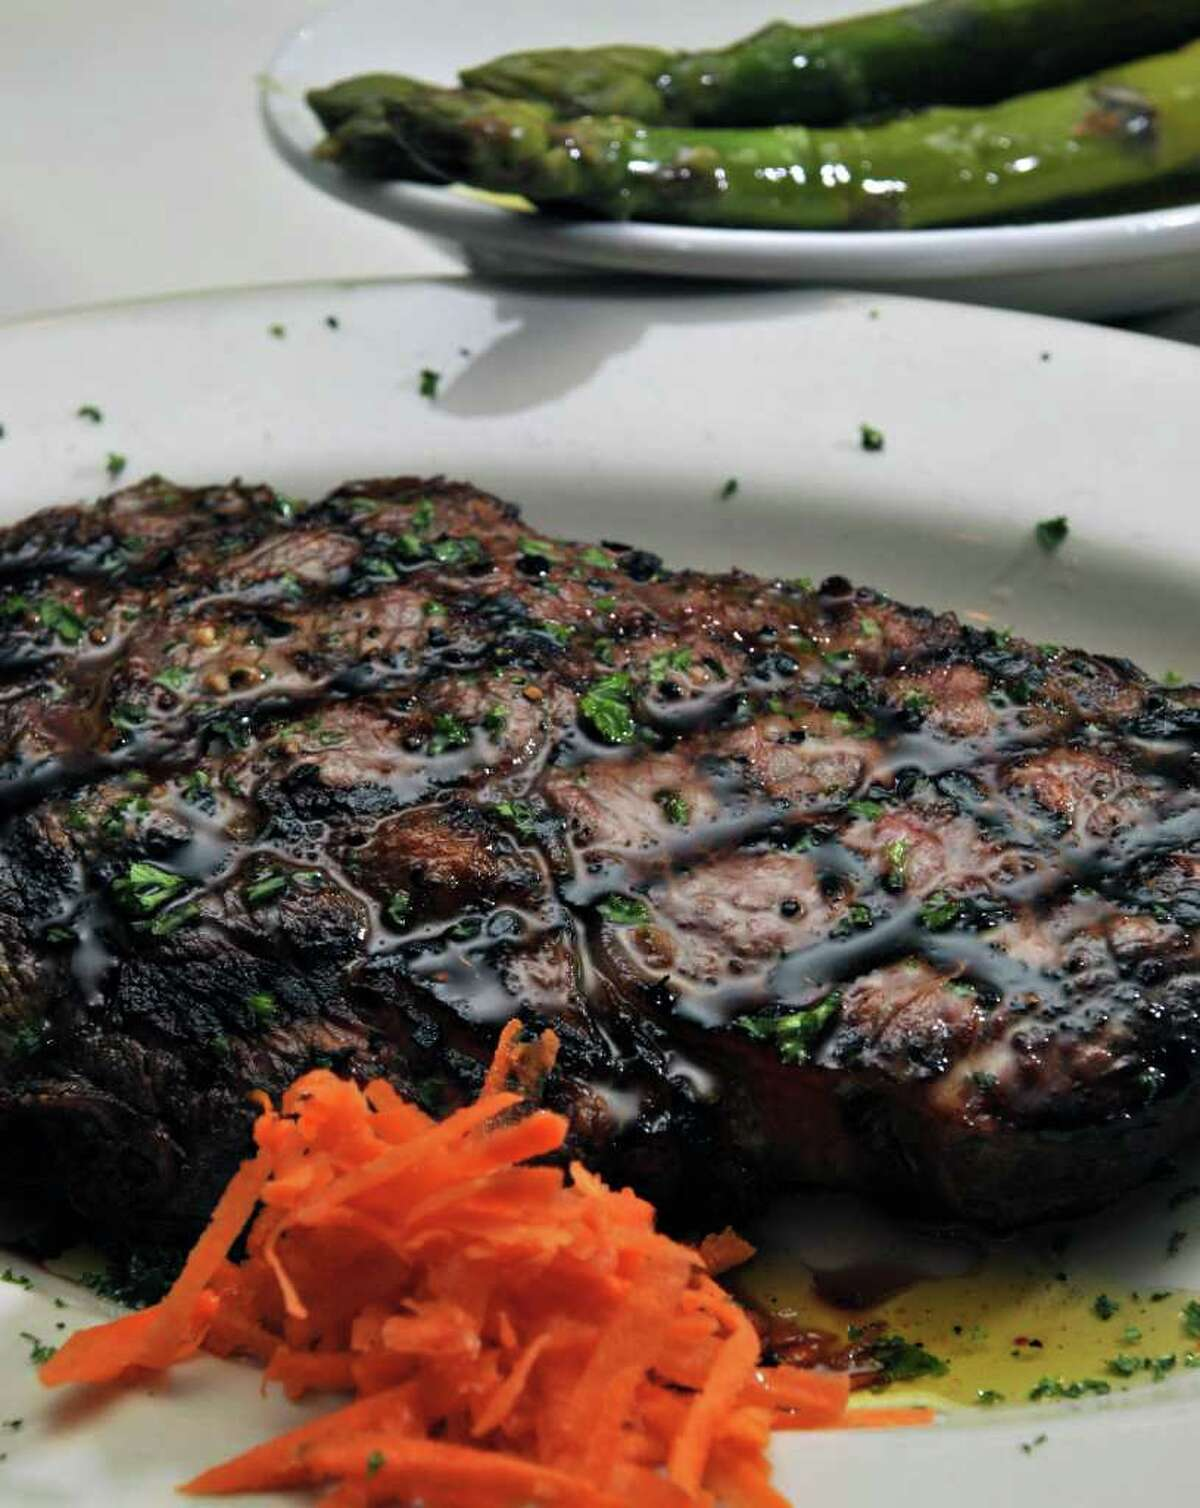 A Delmonico steak with asparagus at Jack's American Bistro in Queensbury Saturday afternoon April 22, 2011. (John Carl D'Annibale / Times Union)